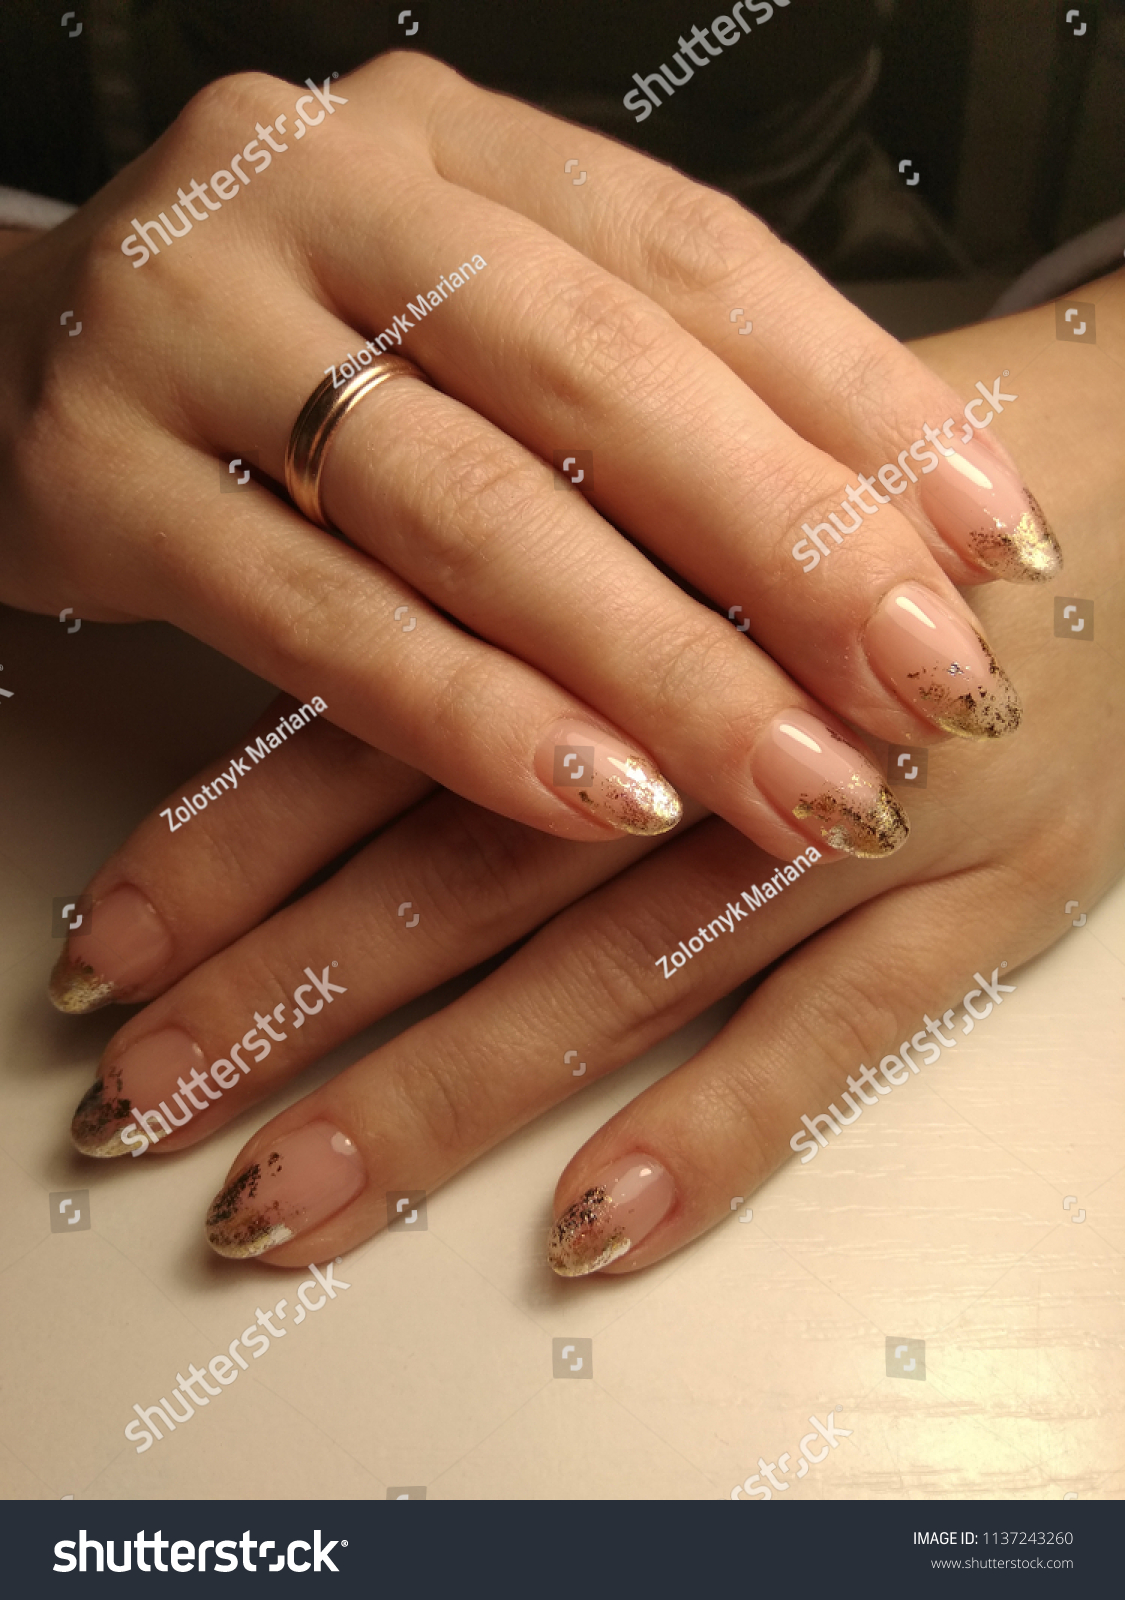 Natural Nails Modern French Manicure Stock Photo & Image (Royalty ...